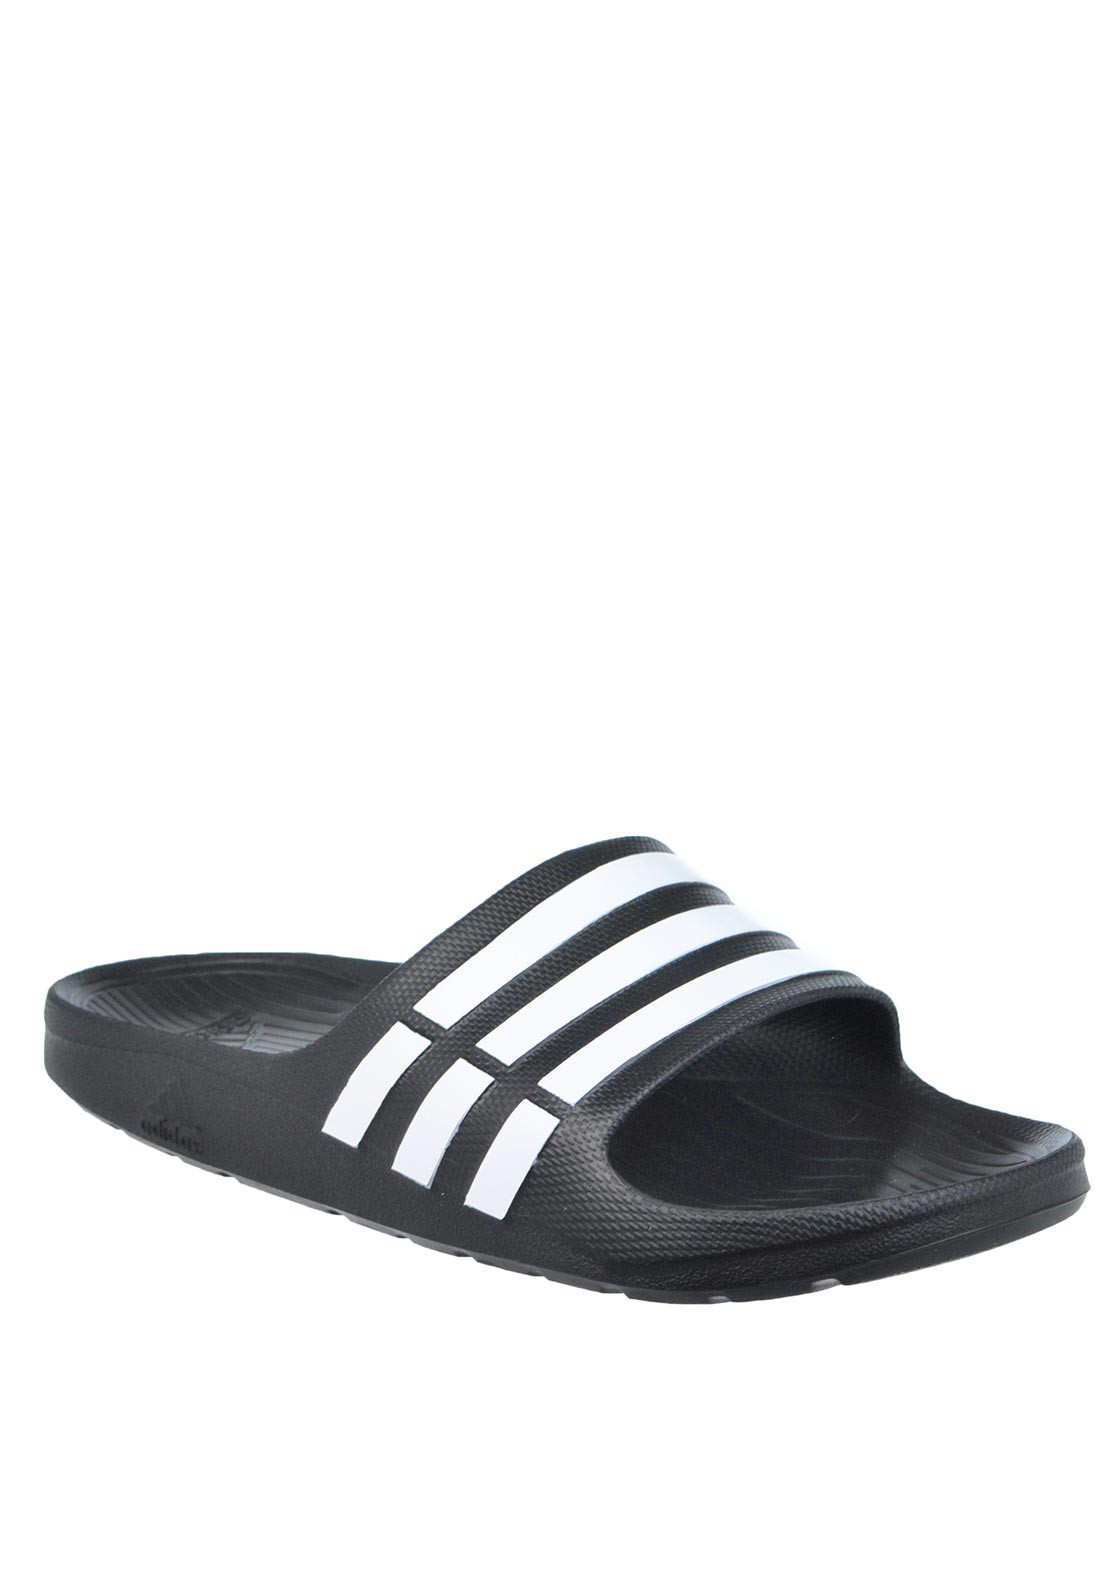 Adidas Duramo Slide Pool Sandals, Black